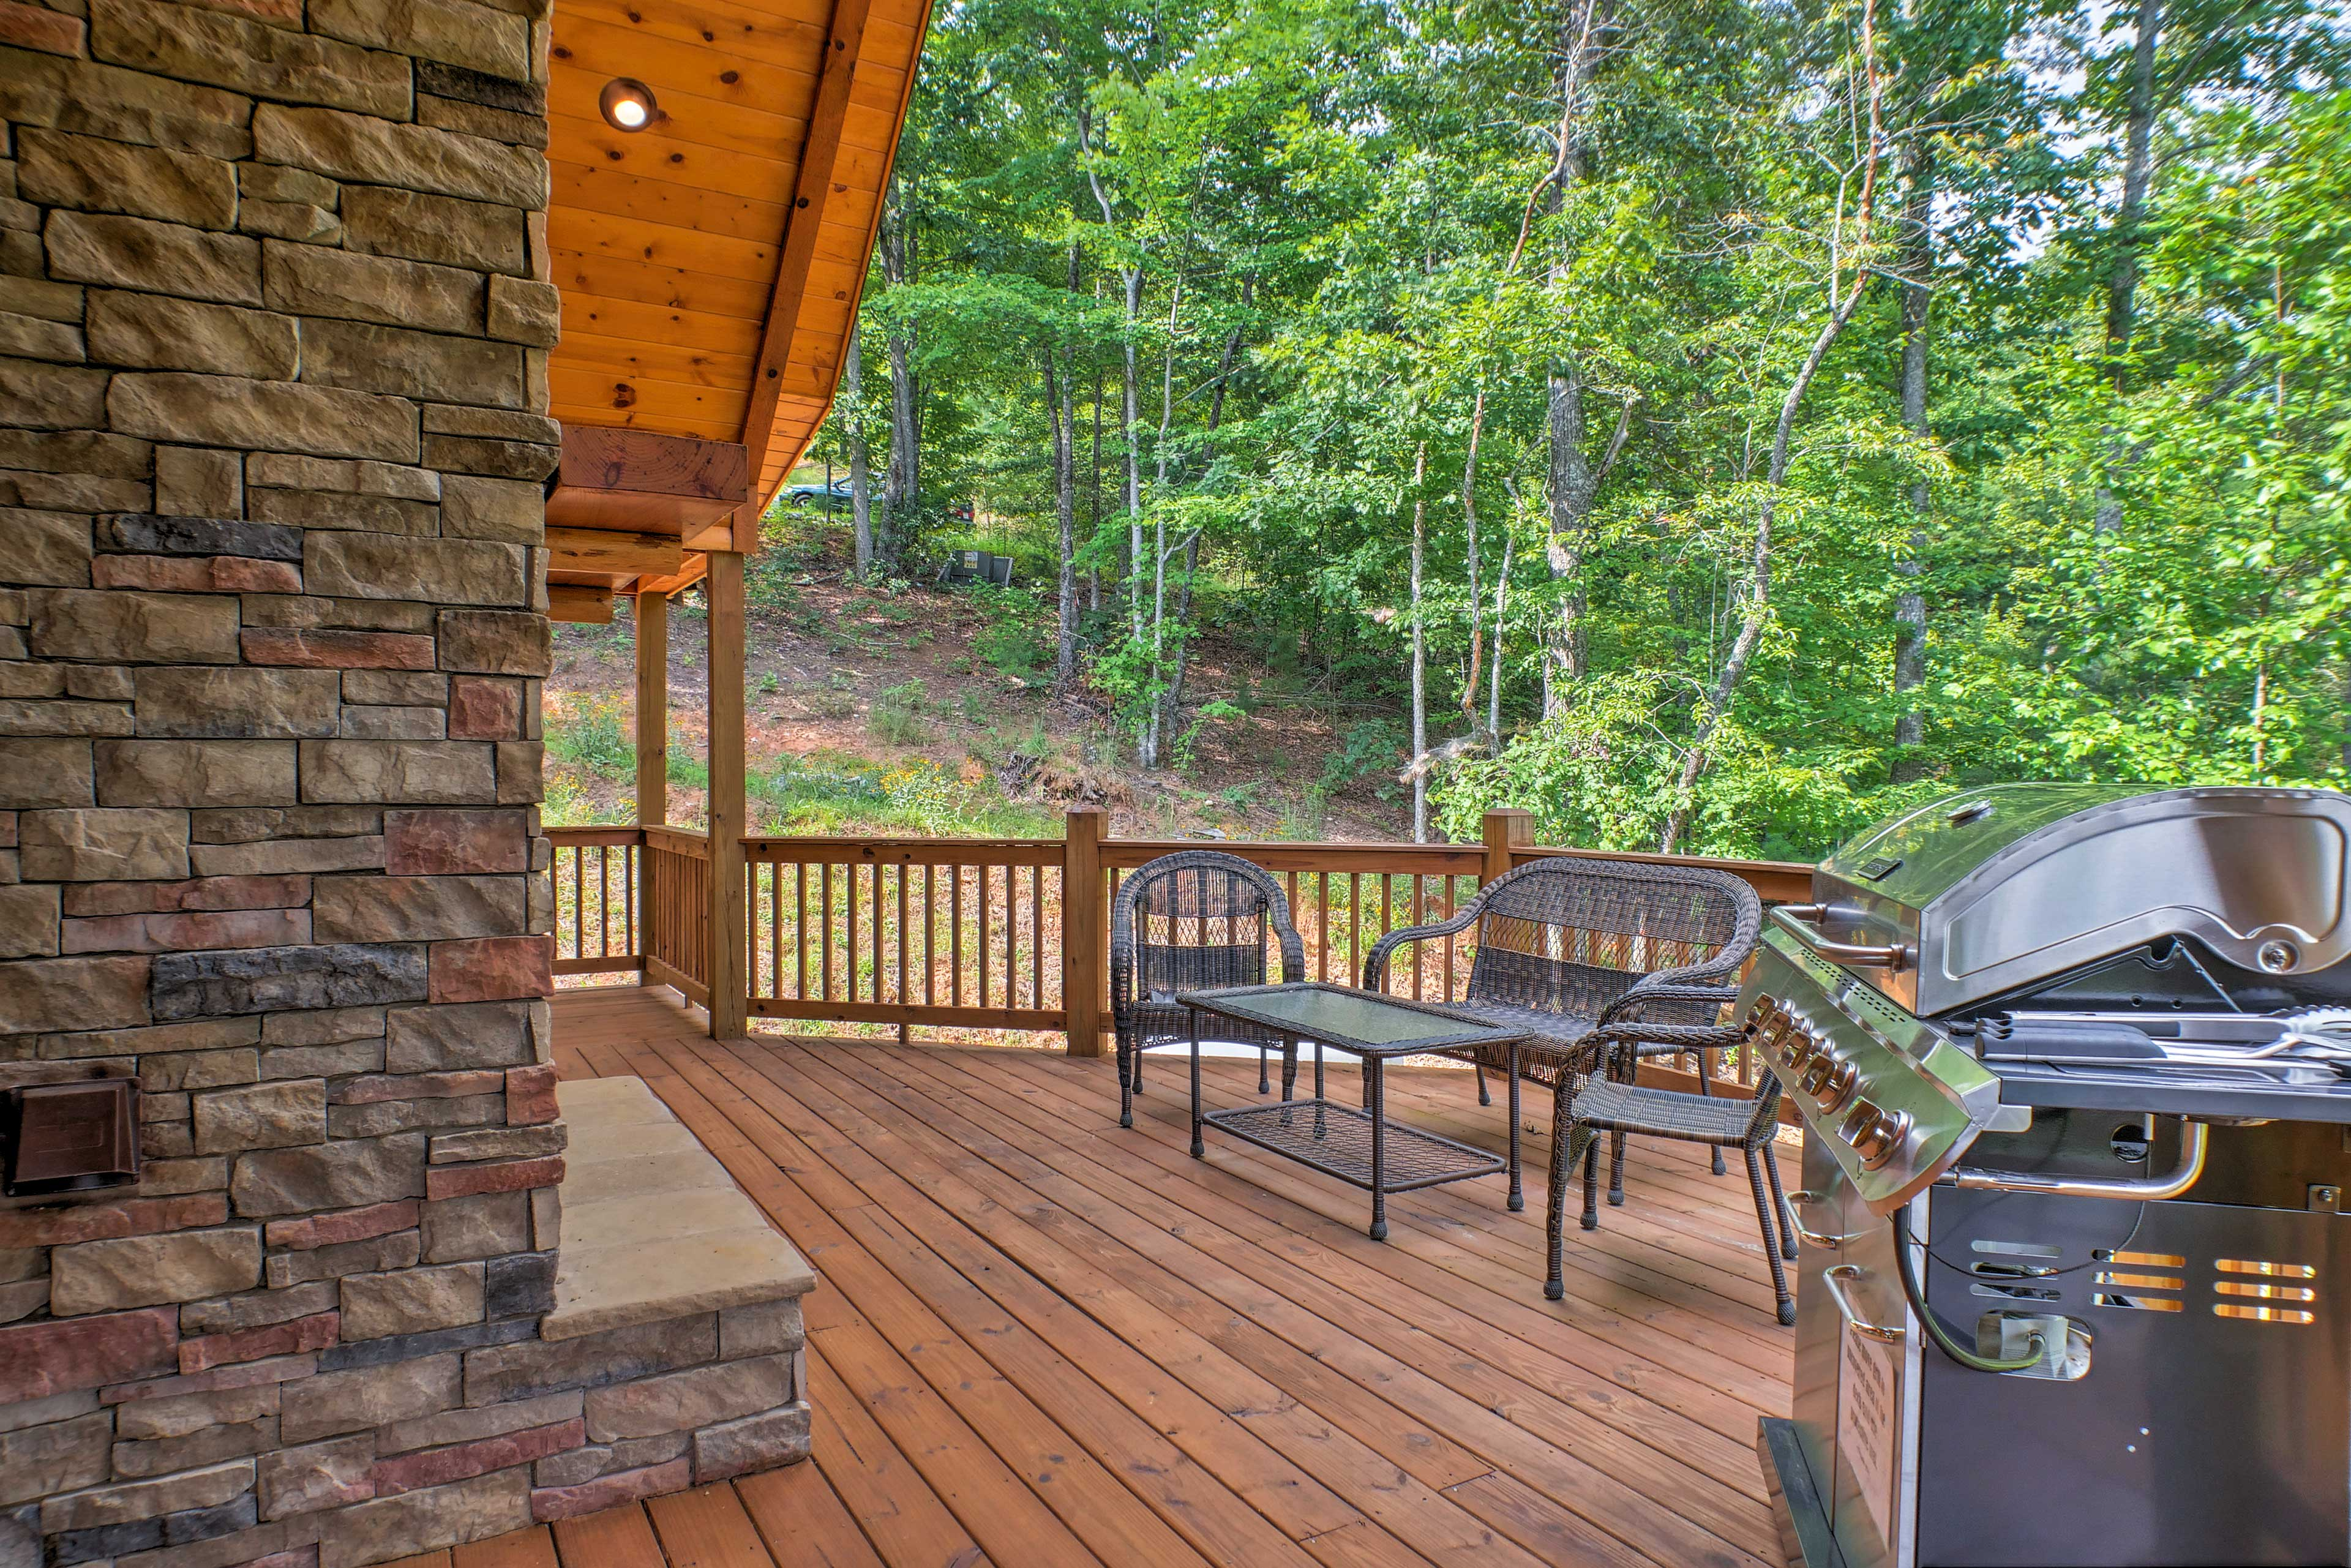 Lounge outside while embracing the fresh mountain air!